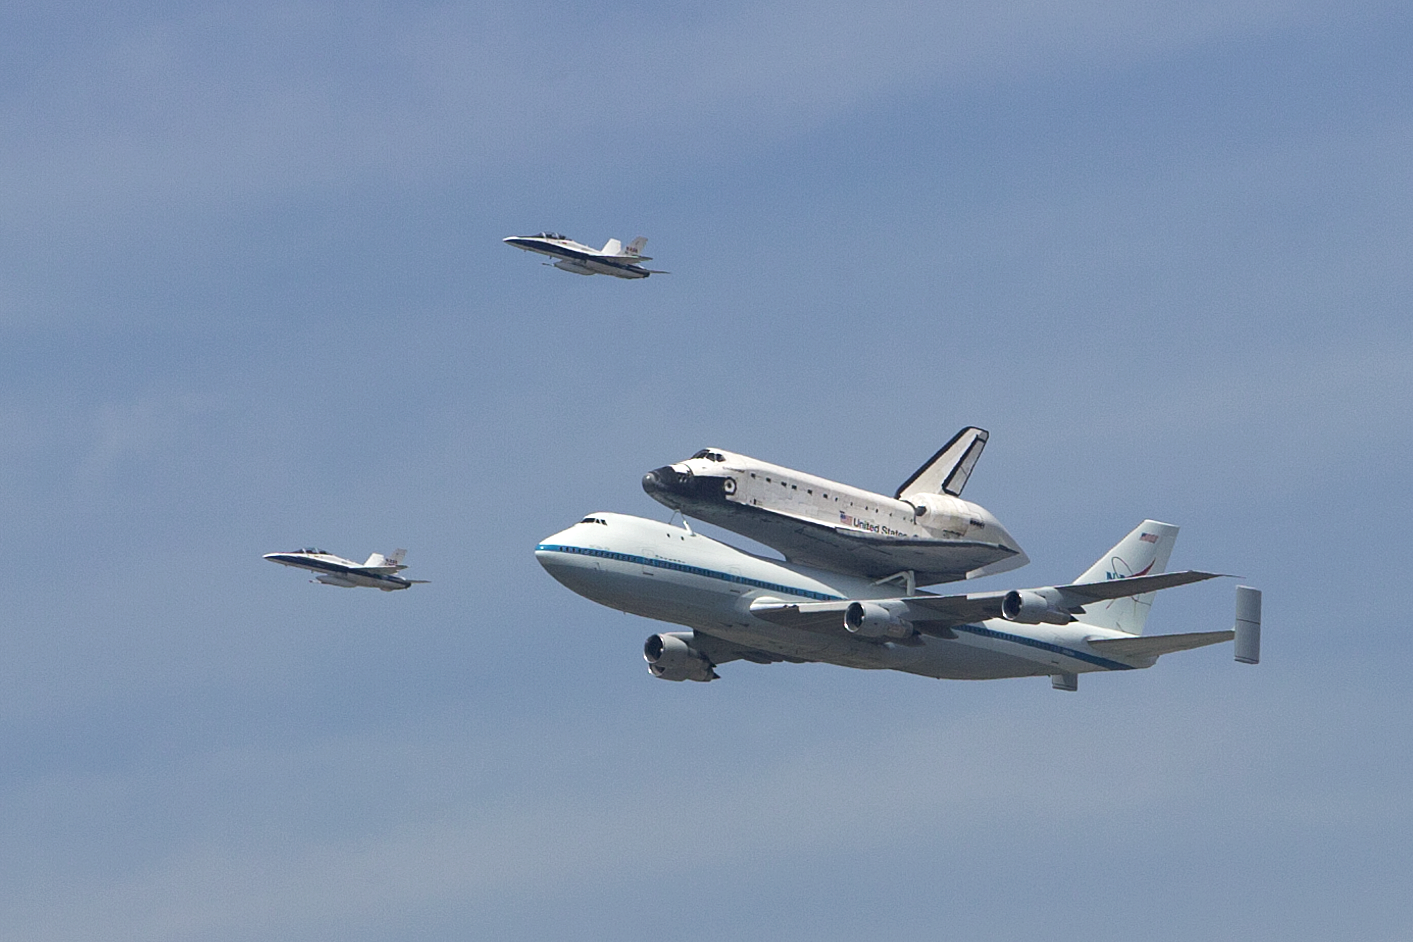 space shuttle flying - photo #15